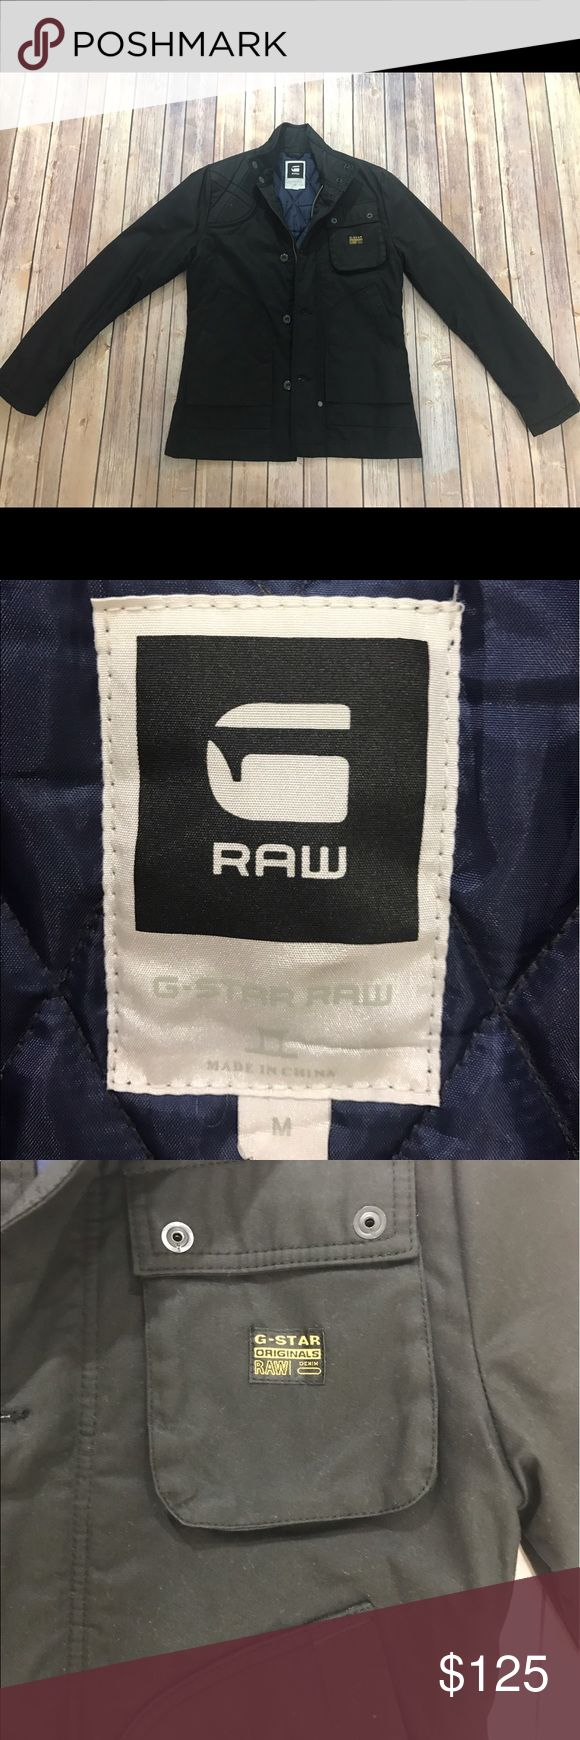 G-Star Raw Men's Jacket Basically new G-Star Jacket! In great condition only worn once... size medium. G-Star Jackets & Coats